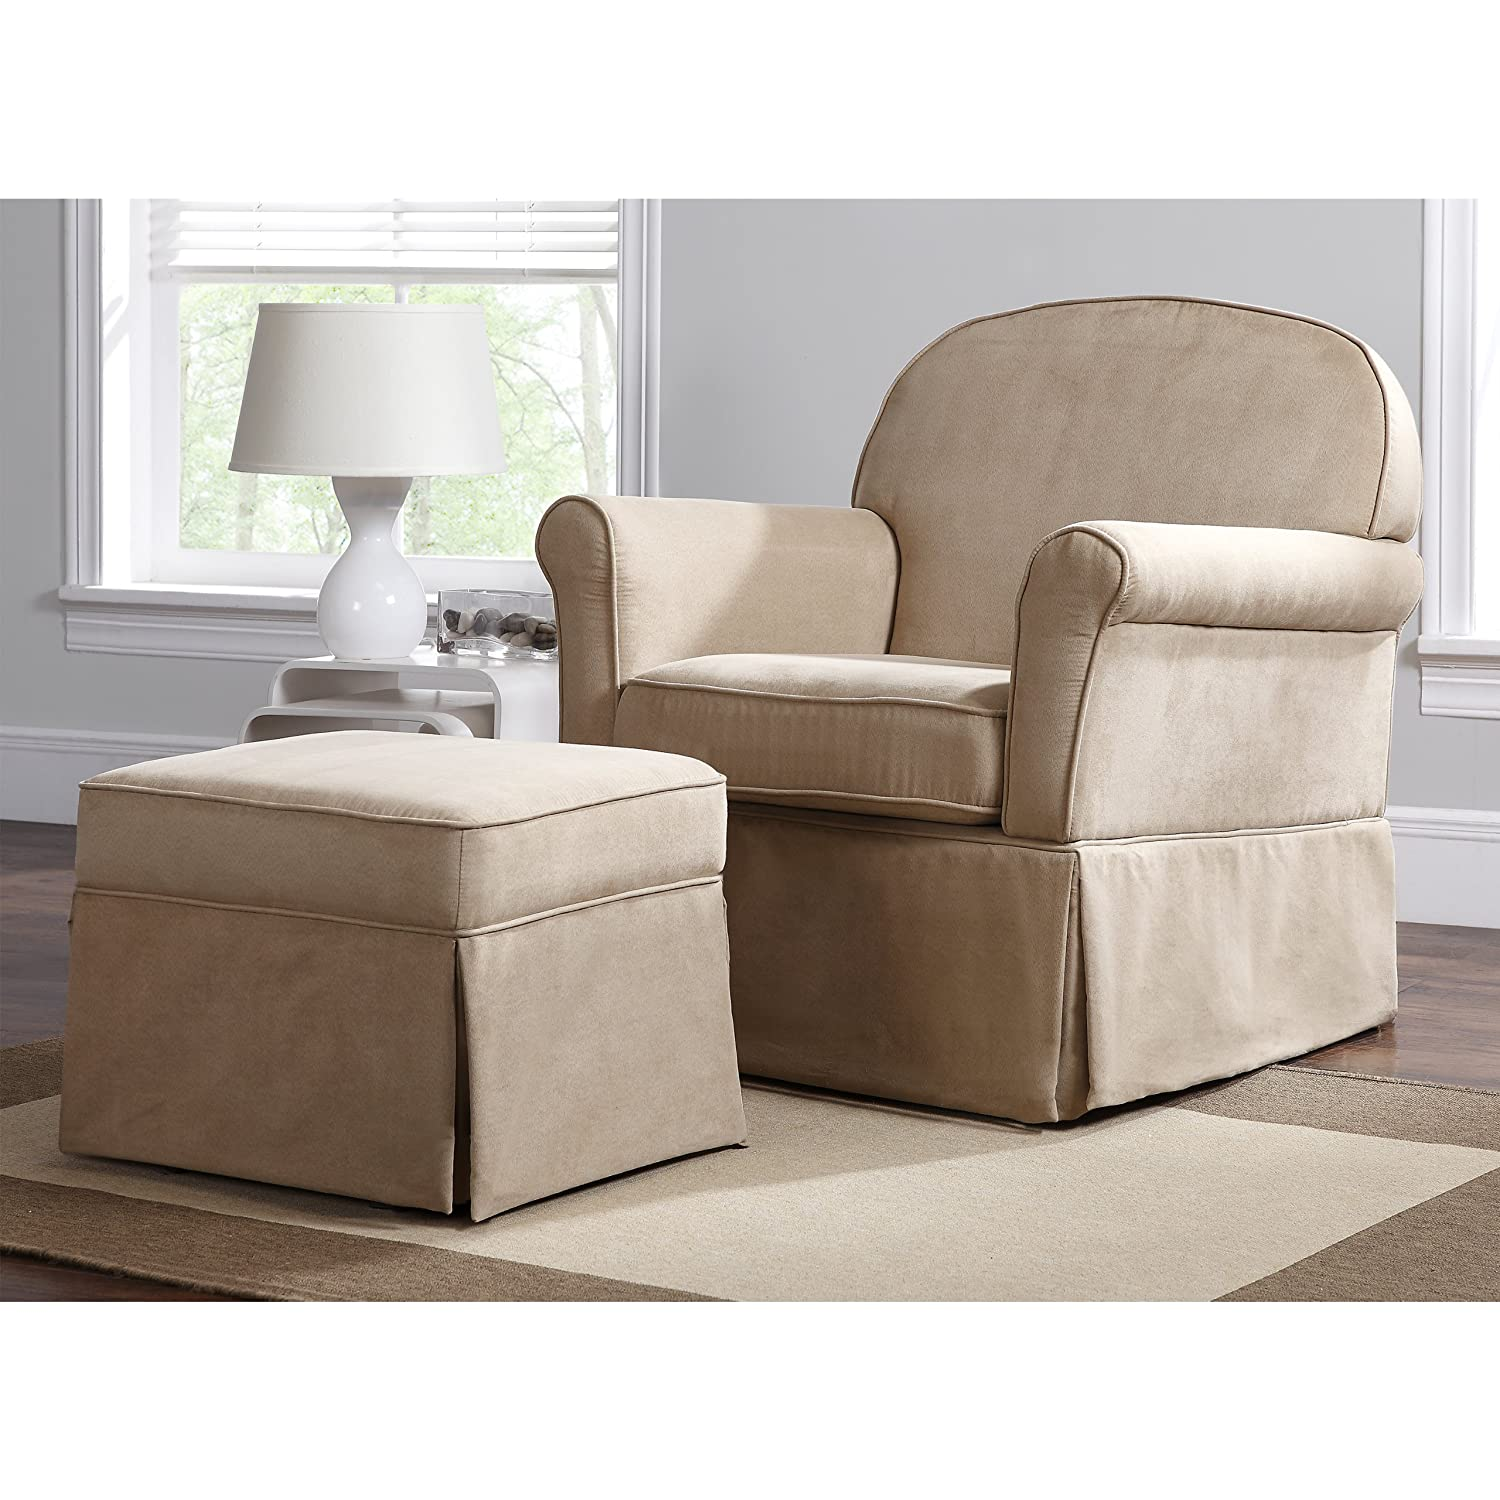 amazoncom baby relax swivel glider and ottoman set hickory brown microfiber baby